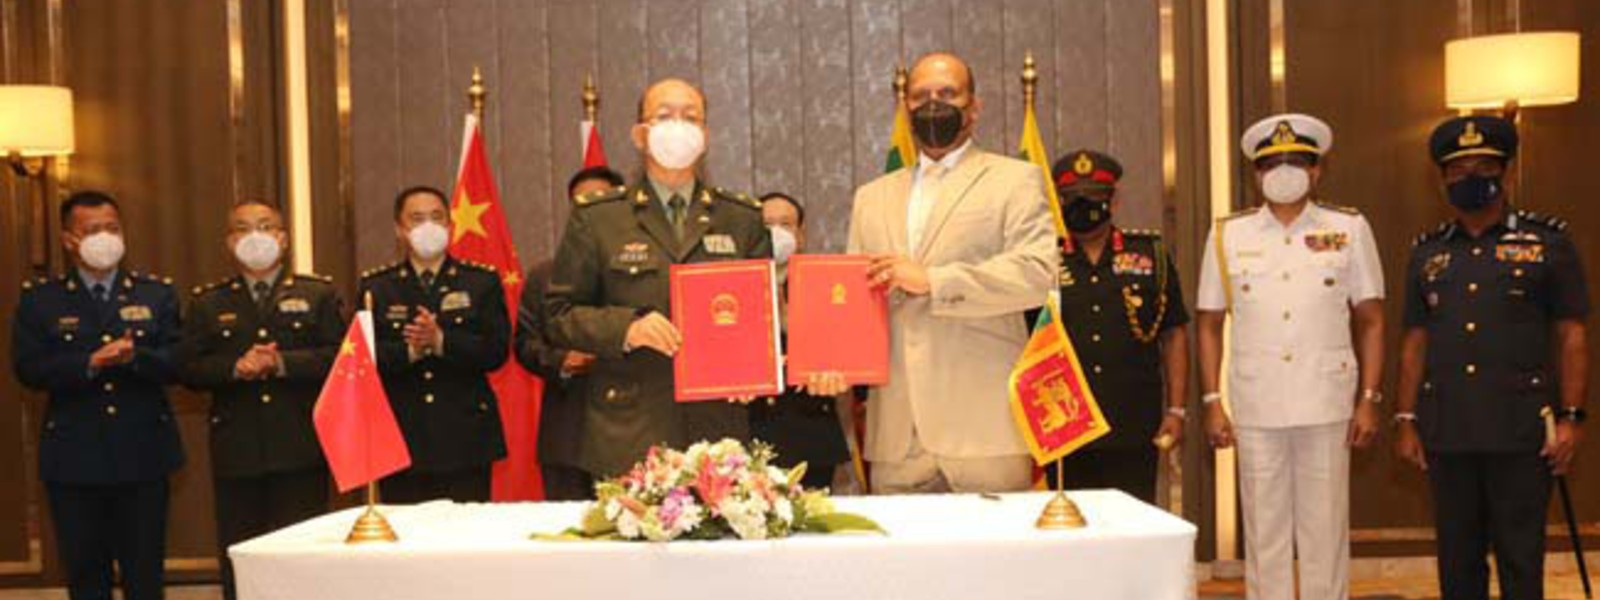 Sri Lanka & China sign Military Assistance Protocol during defence dialogue